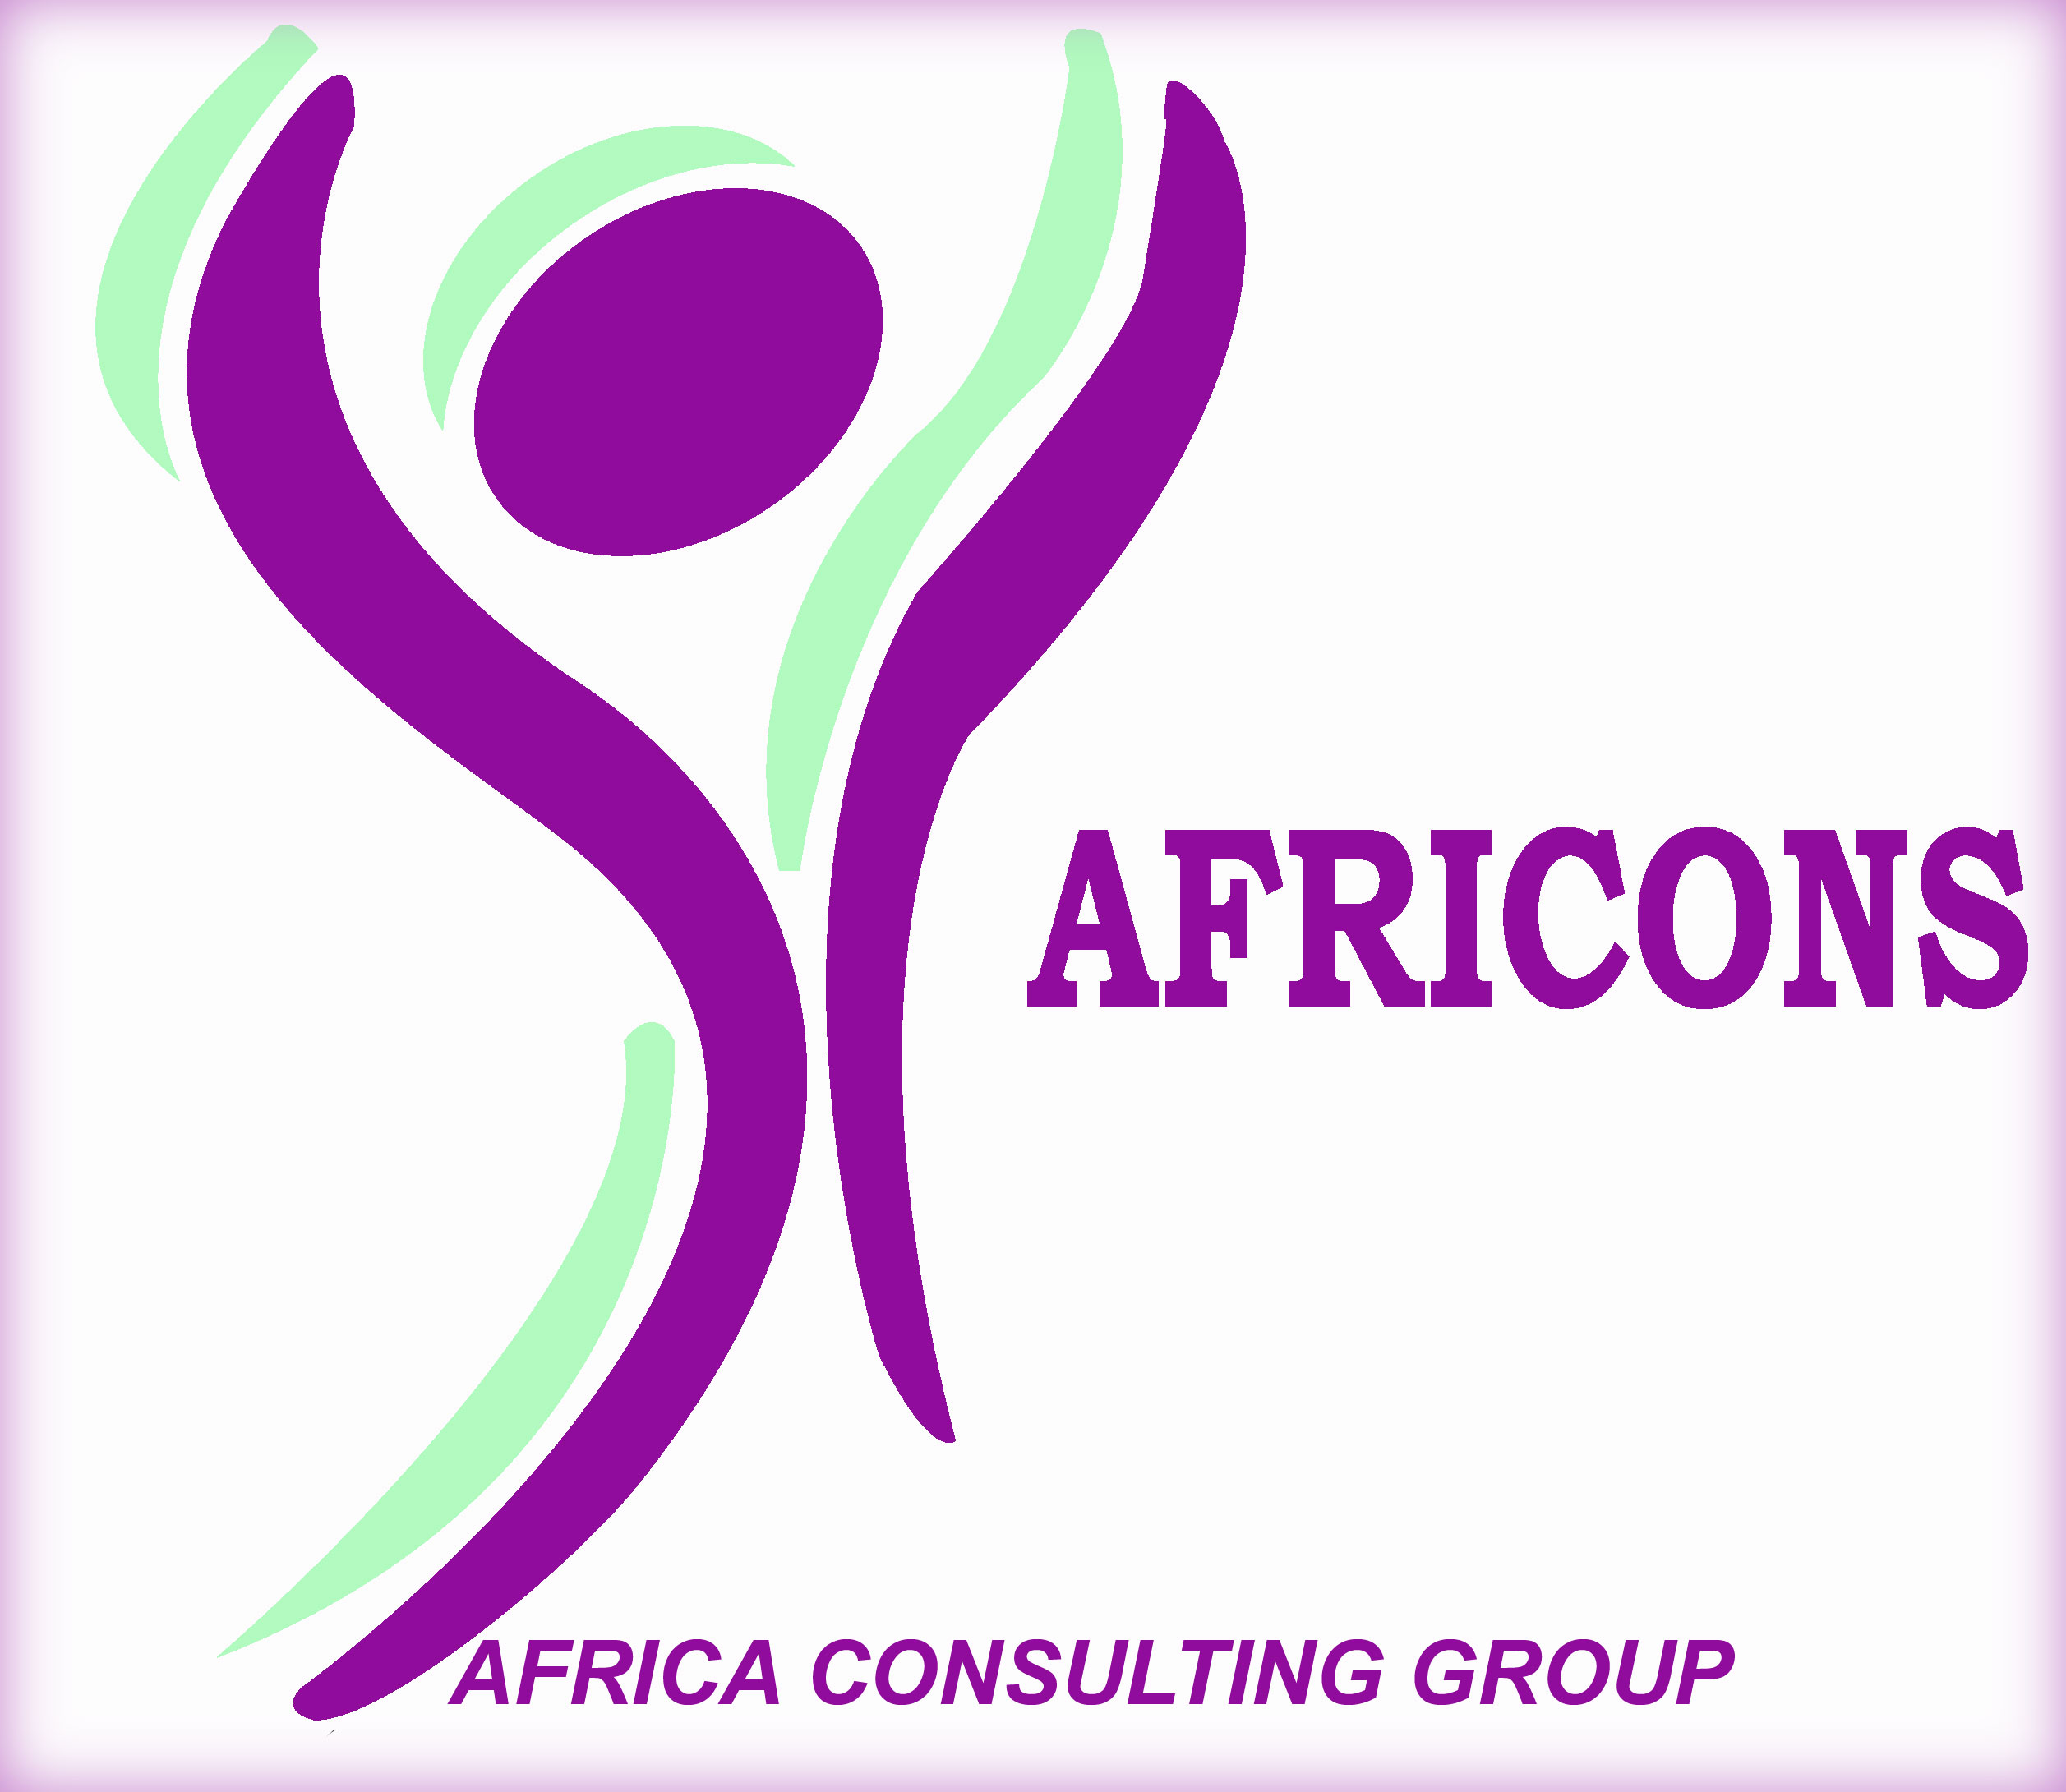 "Africa Consulting Group '' AFRICONS""-"